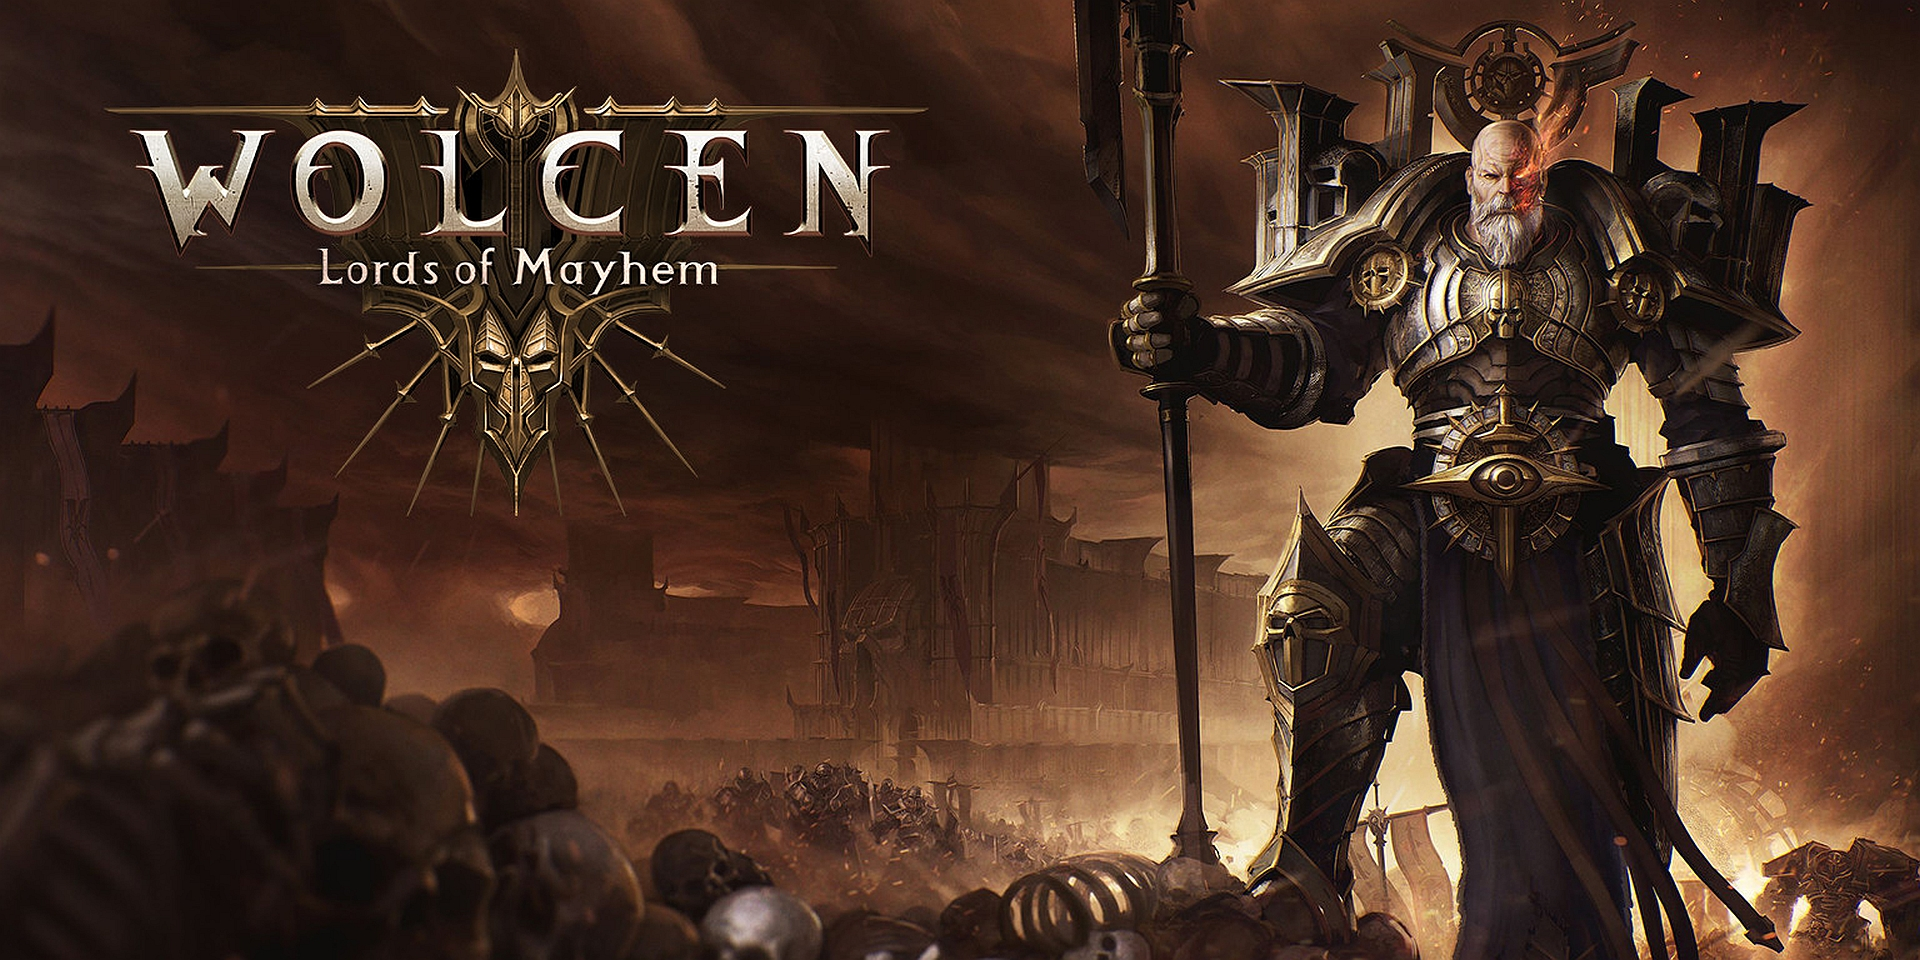 Rpg Games 2020.Cryengine Powered Action Rpg Wolcen To Release In Q1 2020